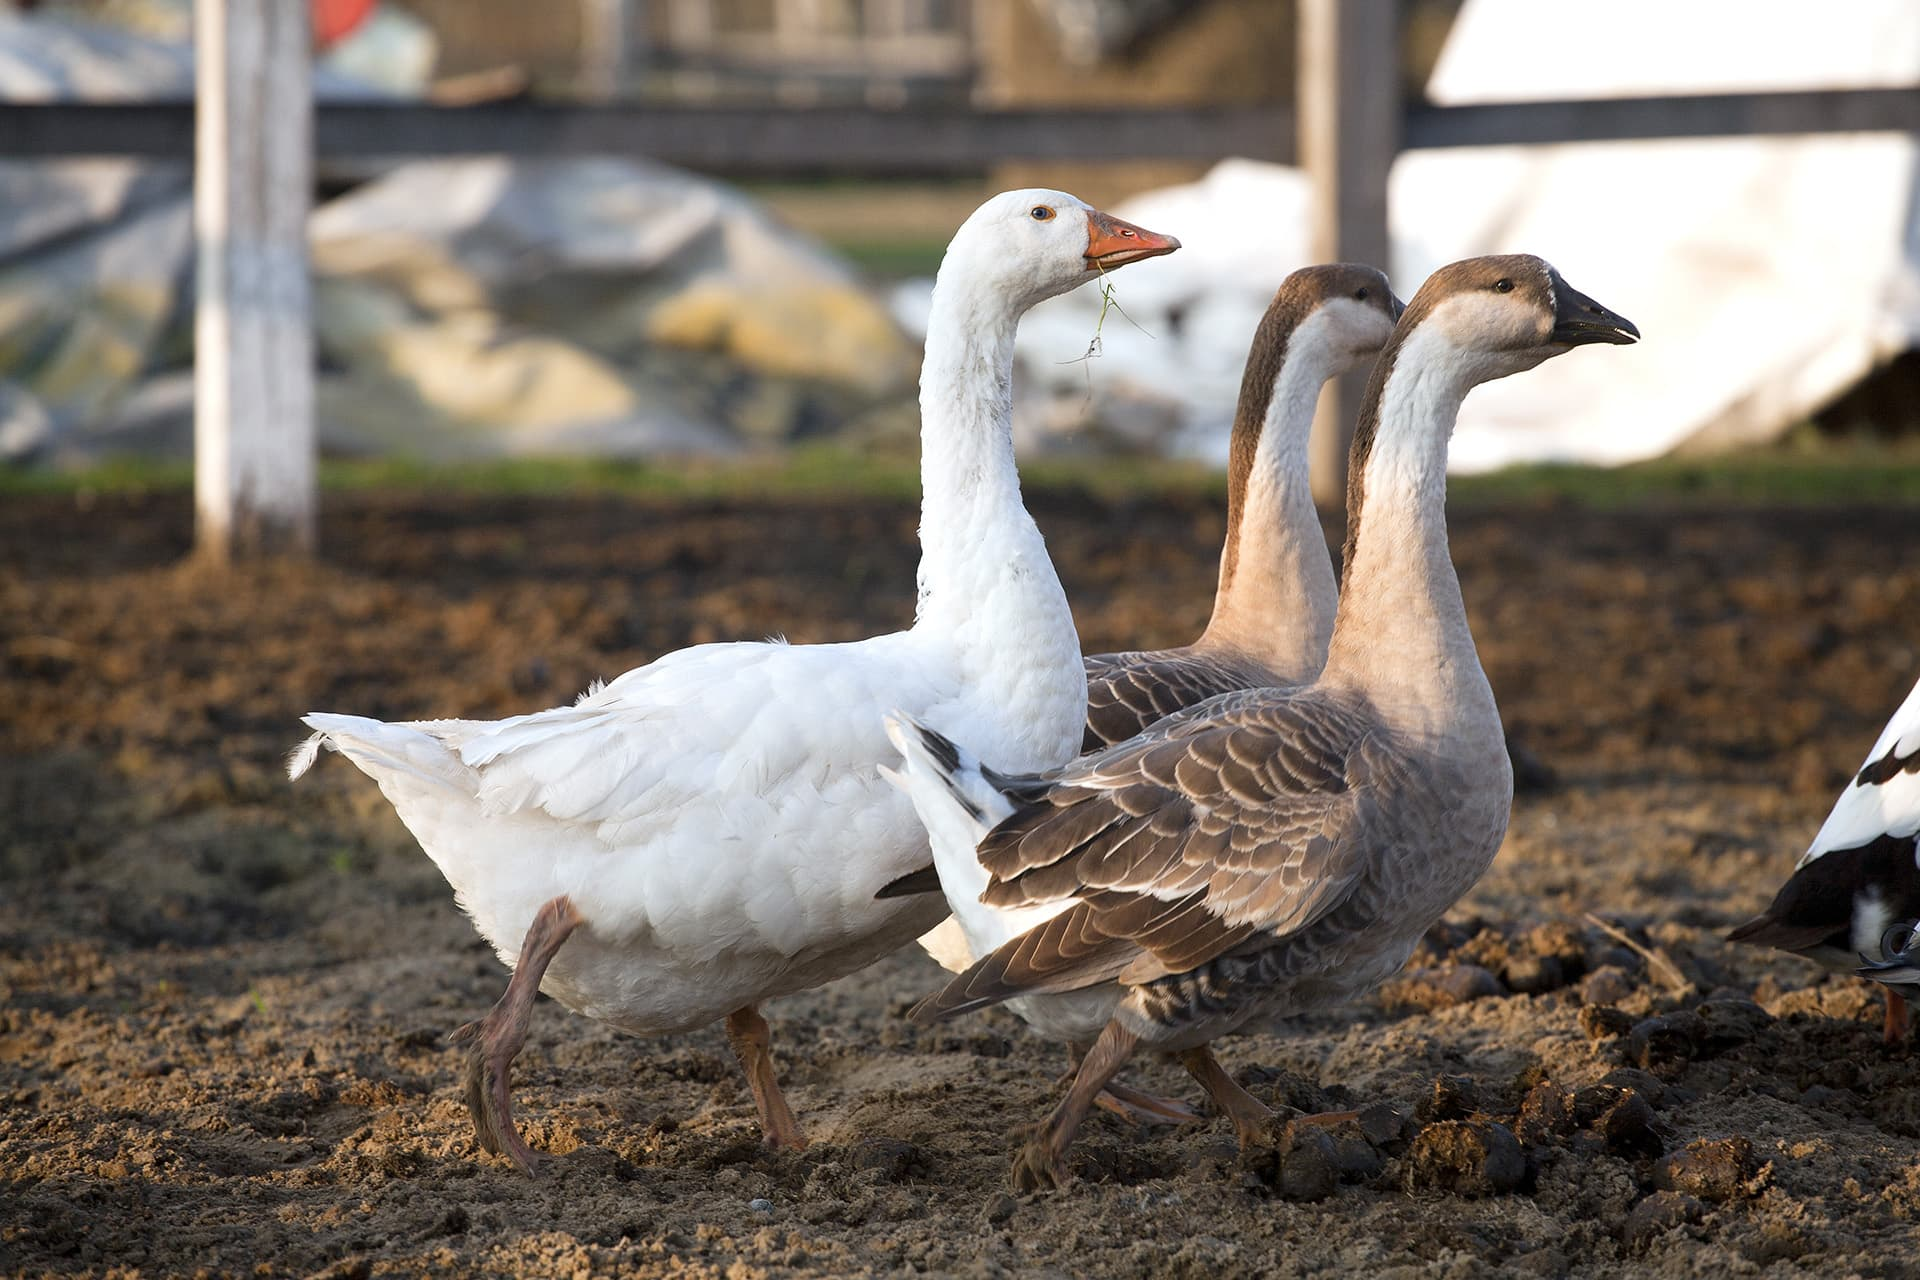 Geese on a farm with farmers insurance by type